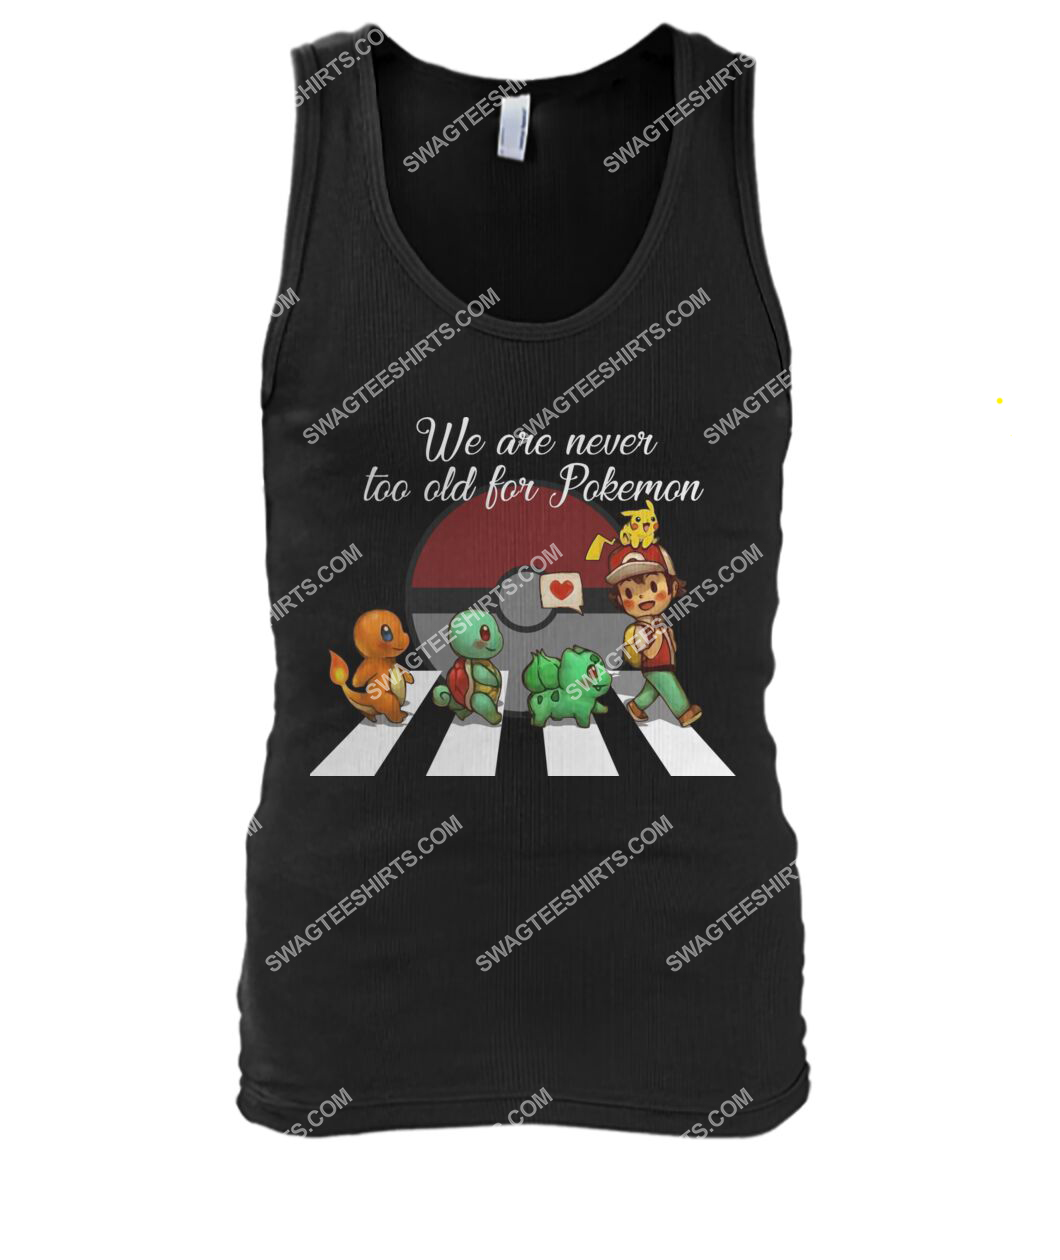 we are never too old for pokemon abbey road tank top 1